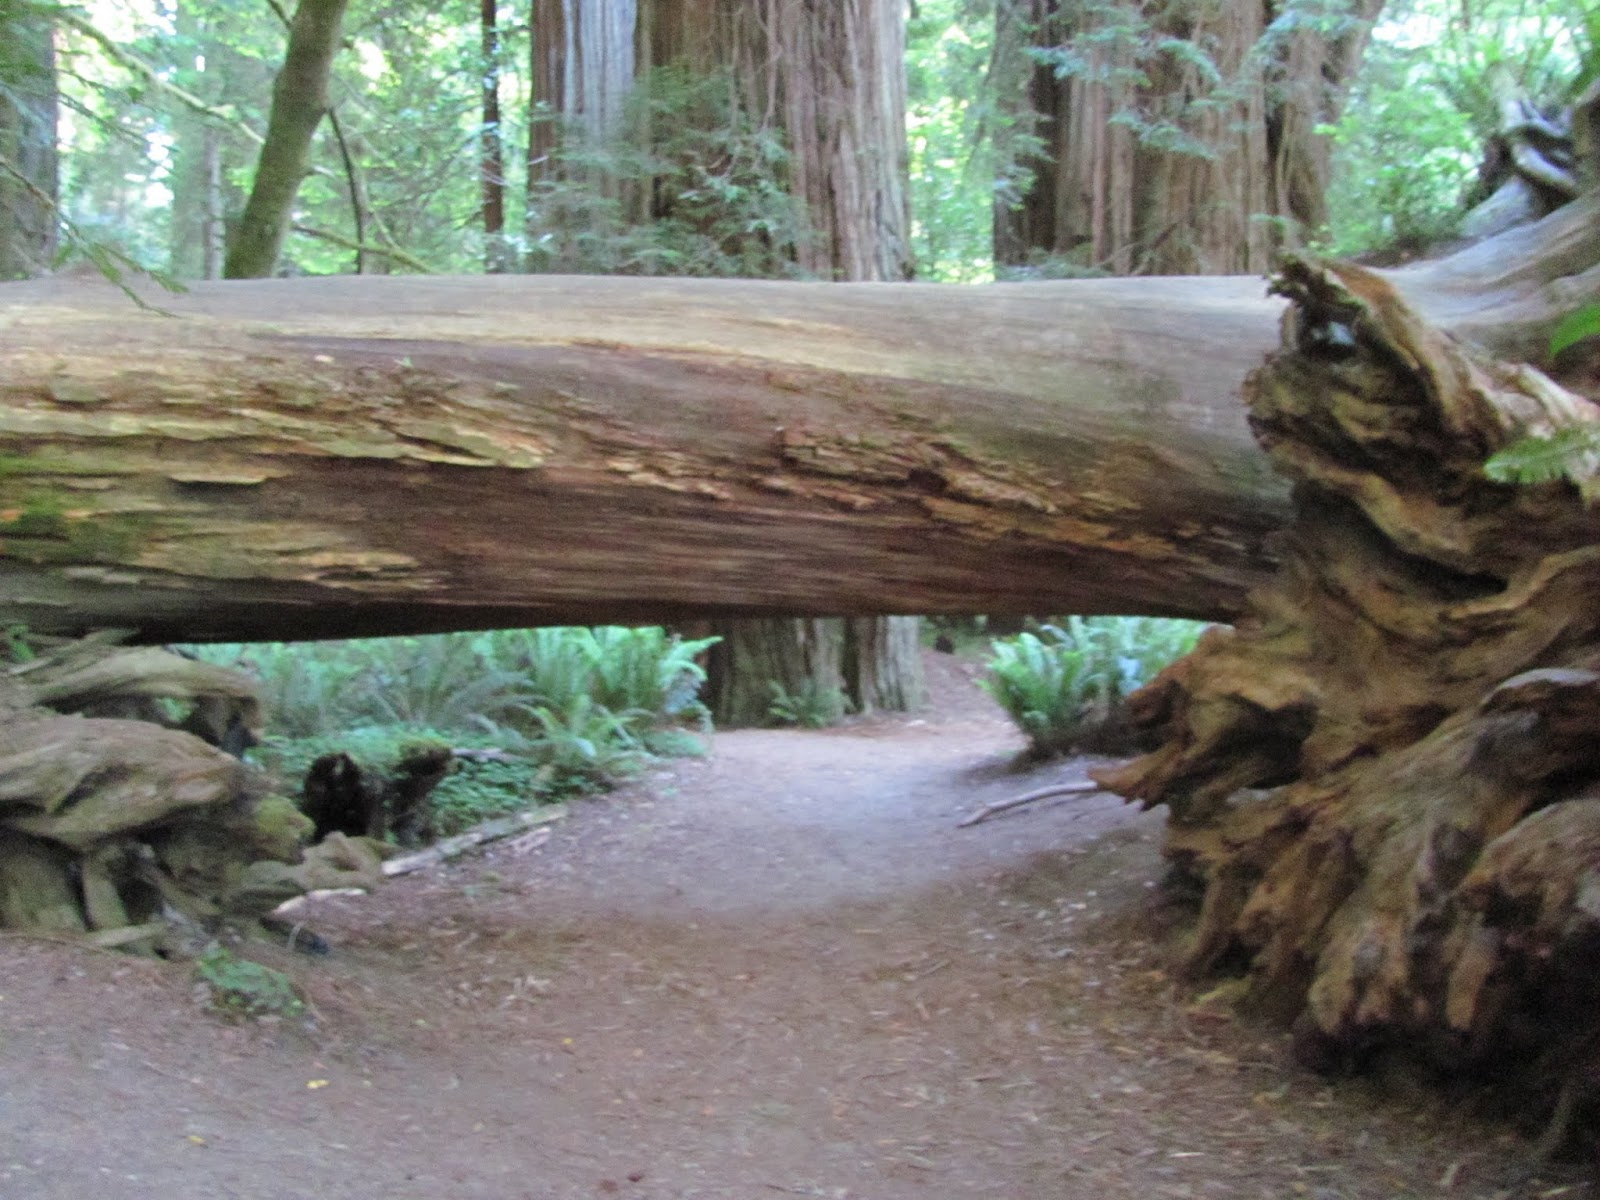 A fallen tree partially covers the path at Jedediah Smith State Park, California